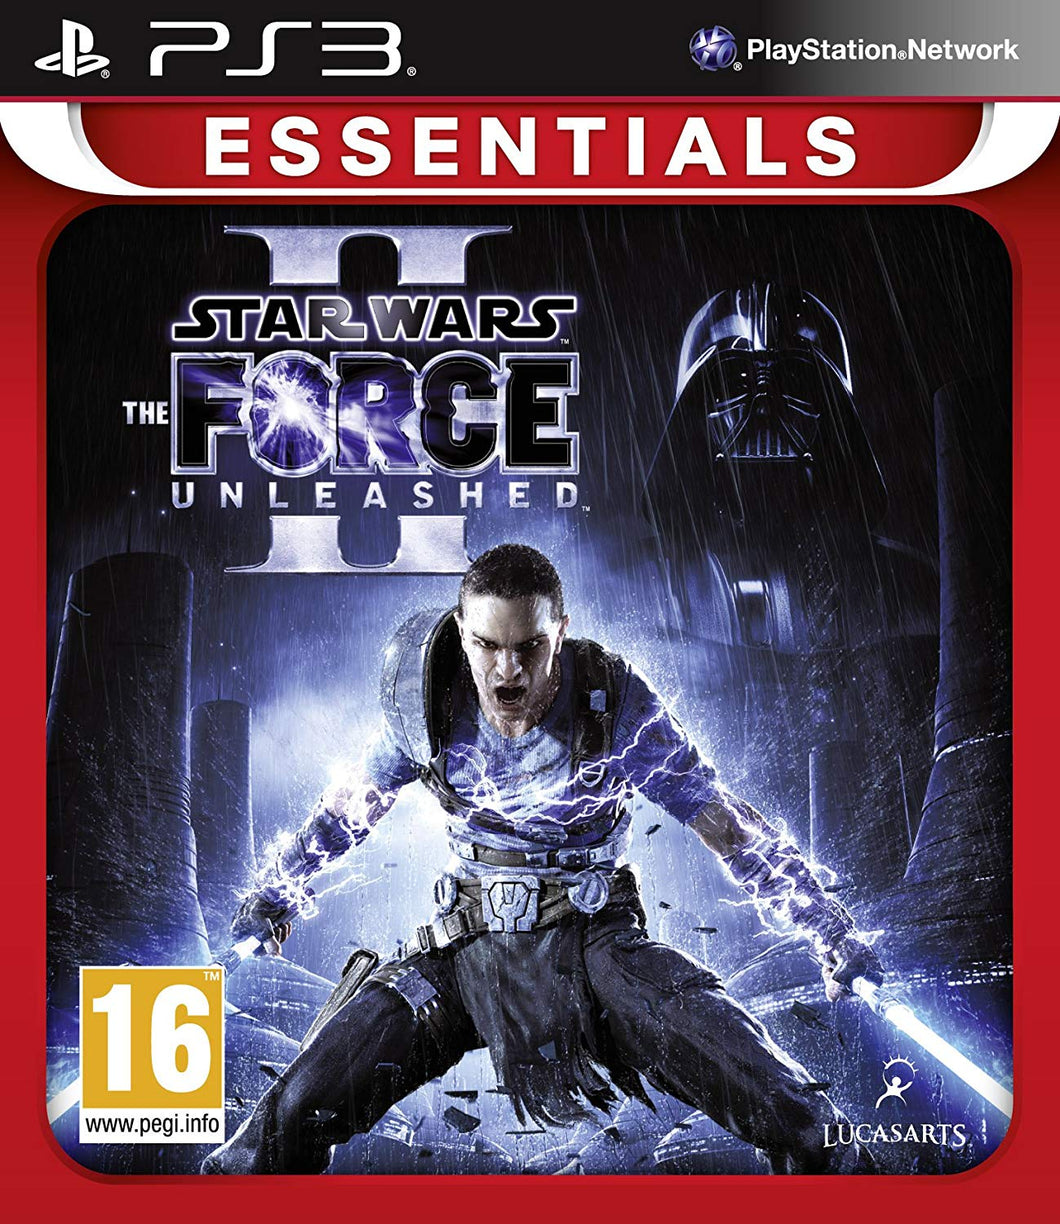 STAR WARS: THE FORCE UNLEASHED II - Essentials Edition